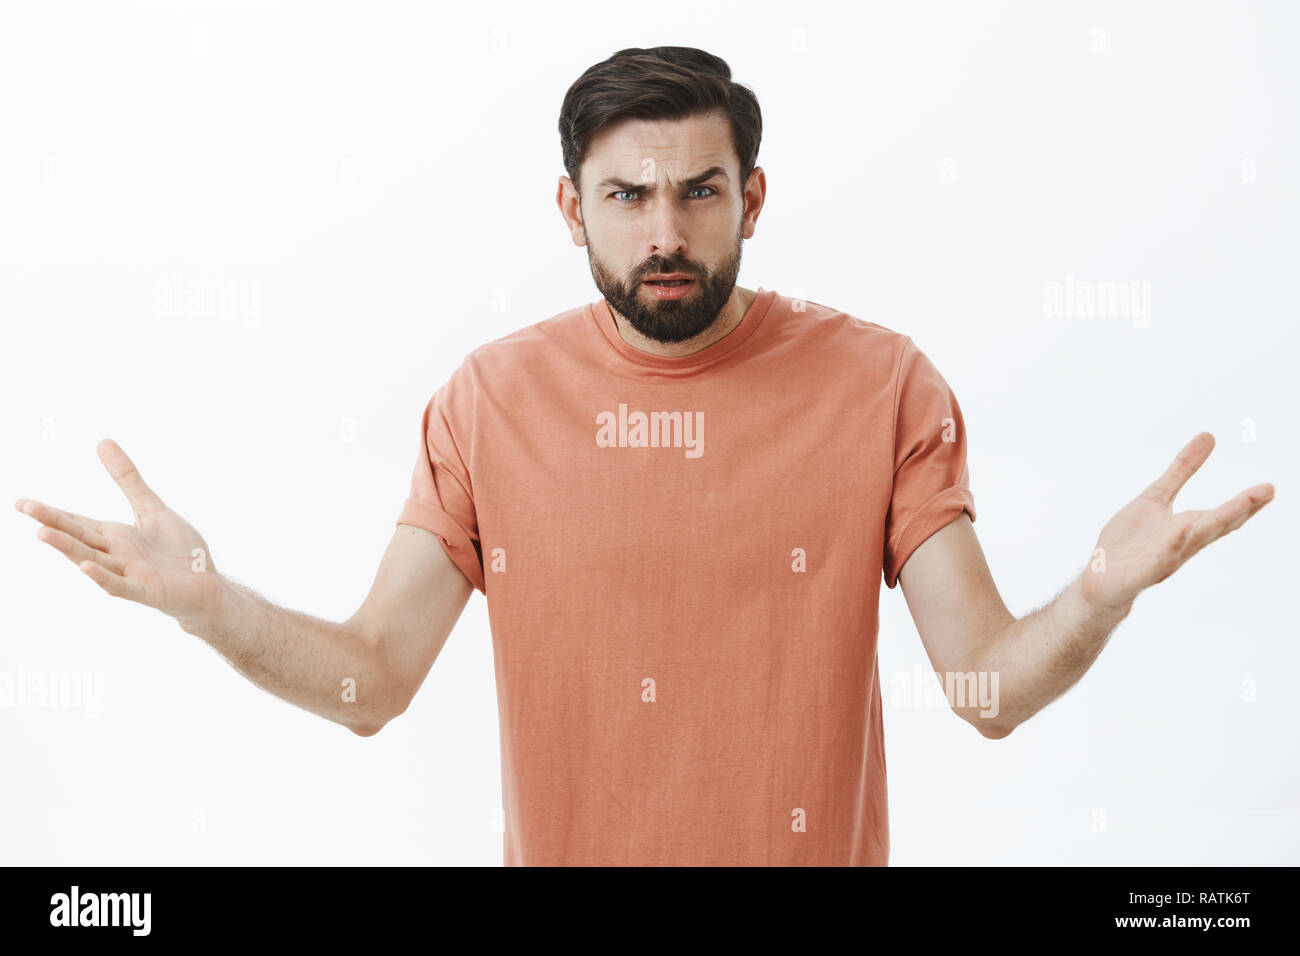 Confused and annoyed angry bearded boyfriend cannot understand why arguing, frowning with clueless emotions shrugging raising hands sideways in dismay, asking question intense and irritated - Stock Image